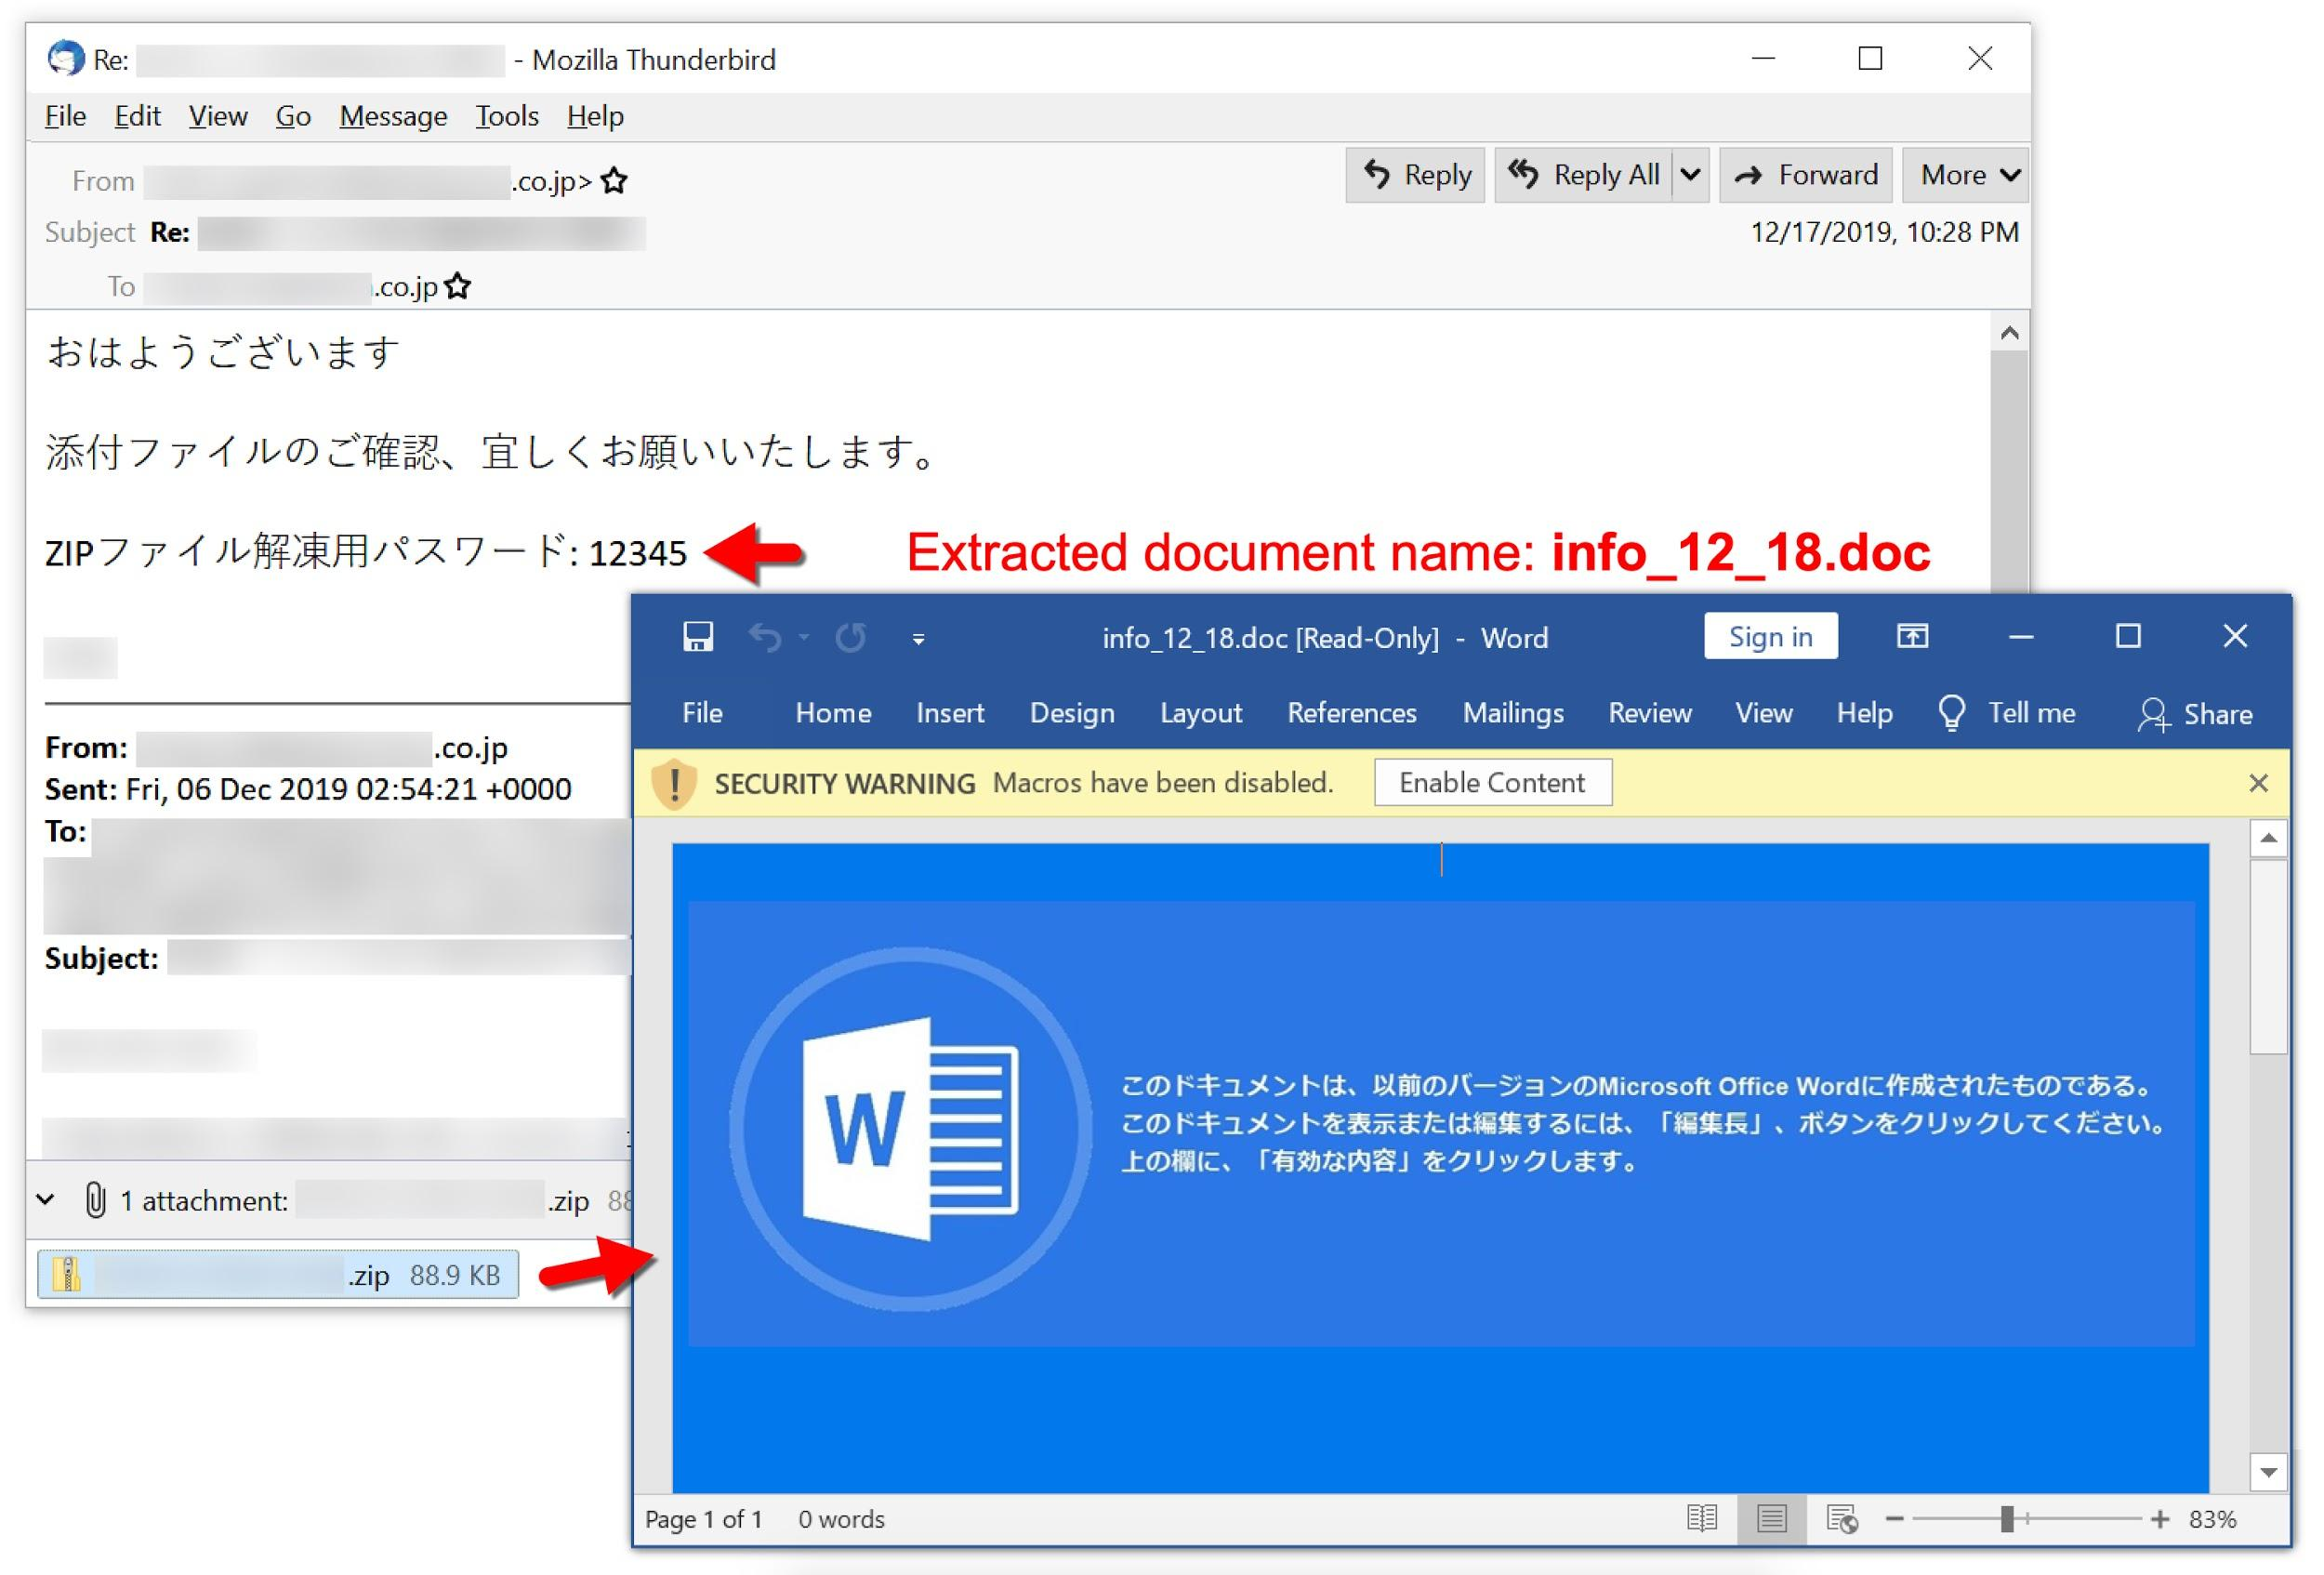 Screenshot includes a Japanese-language greeting. It continues by offering a zip password and closeout. The extracted document, info_12_18, opens with a message attempting to trick the user into enabling macros.